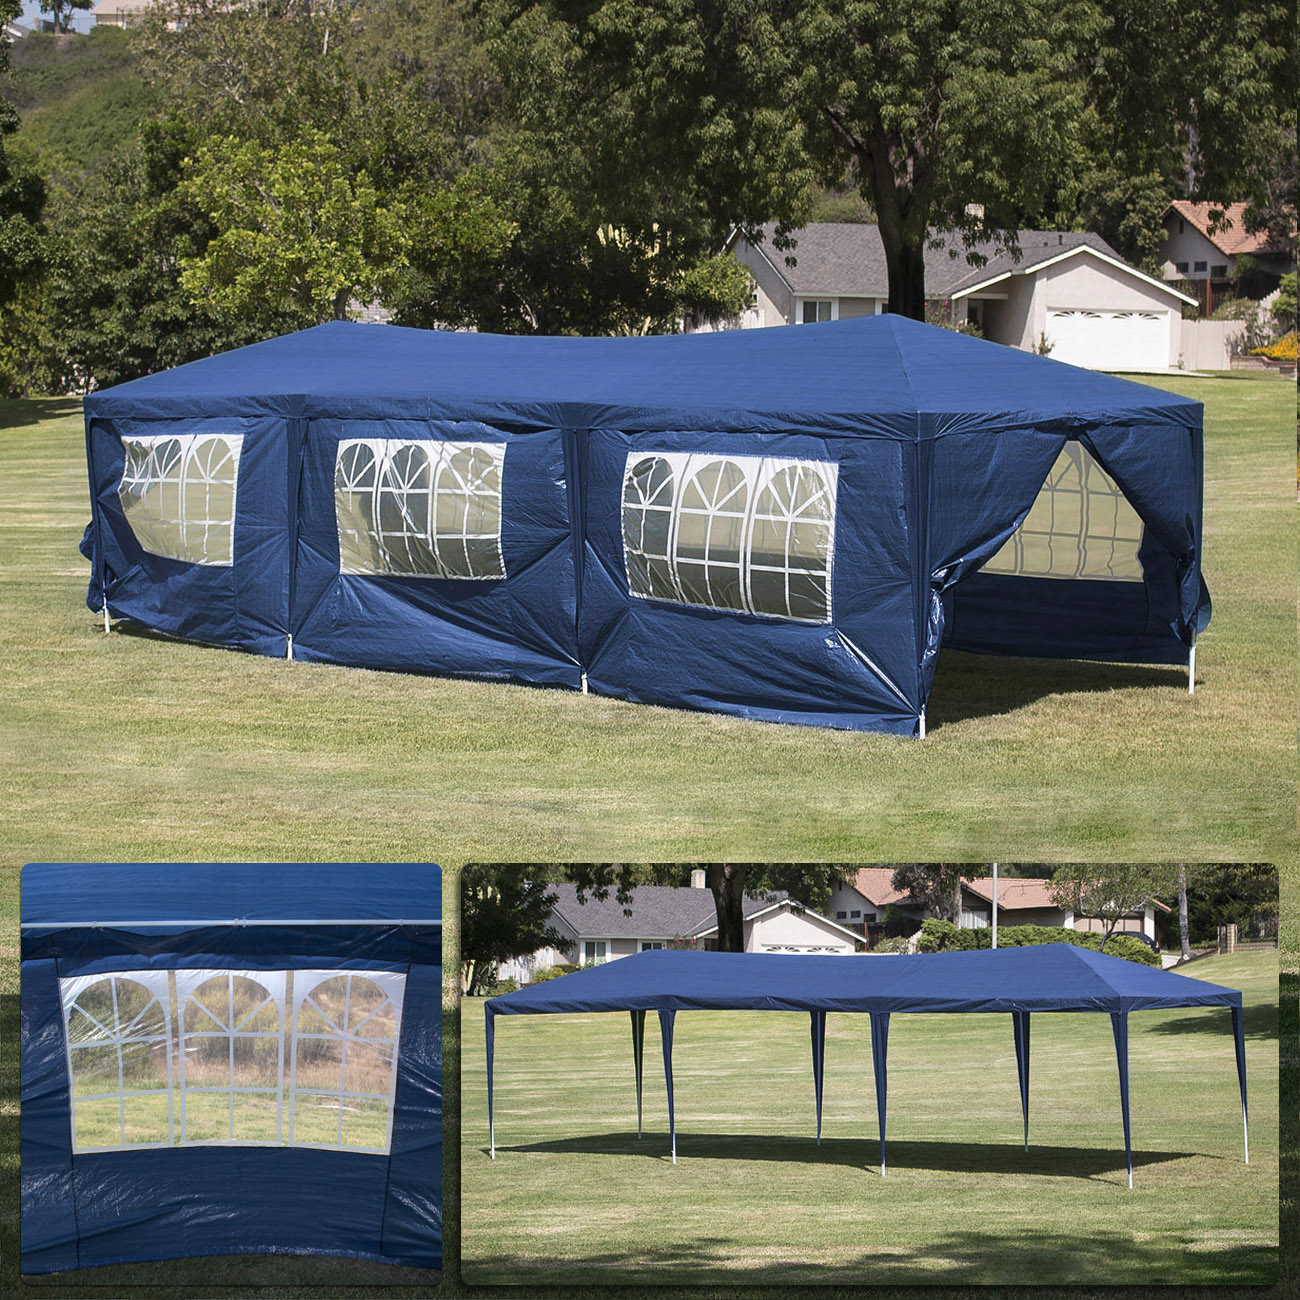 10 x 30 Dark Blue Party Tent Canopy & 10 x 30 Blue Party Tent Canopy Gazebo